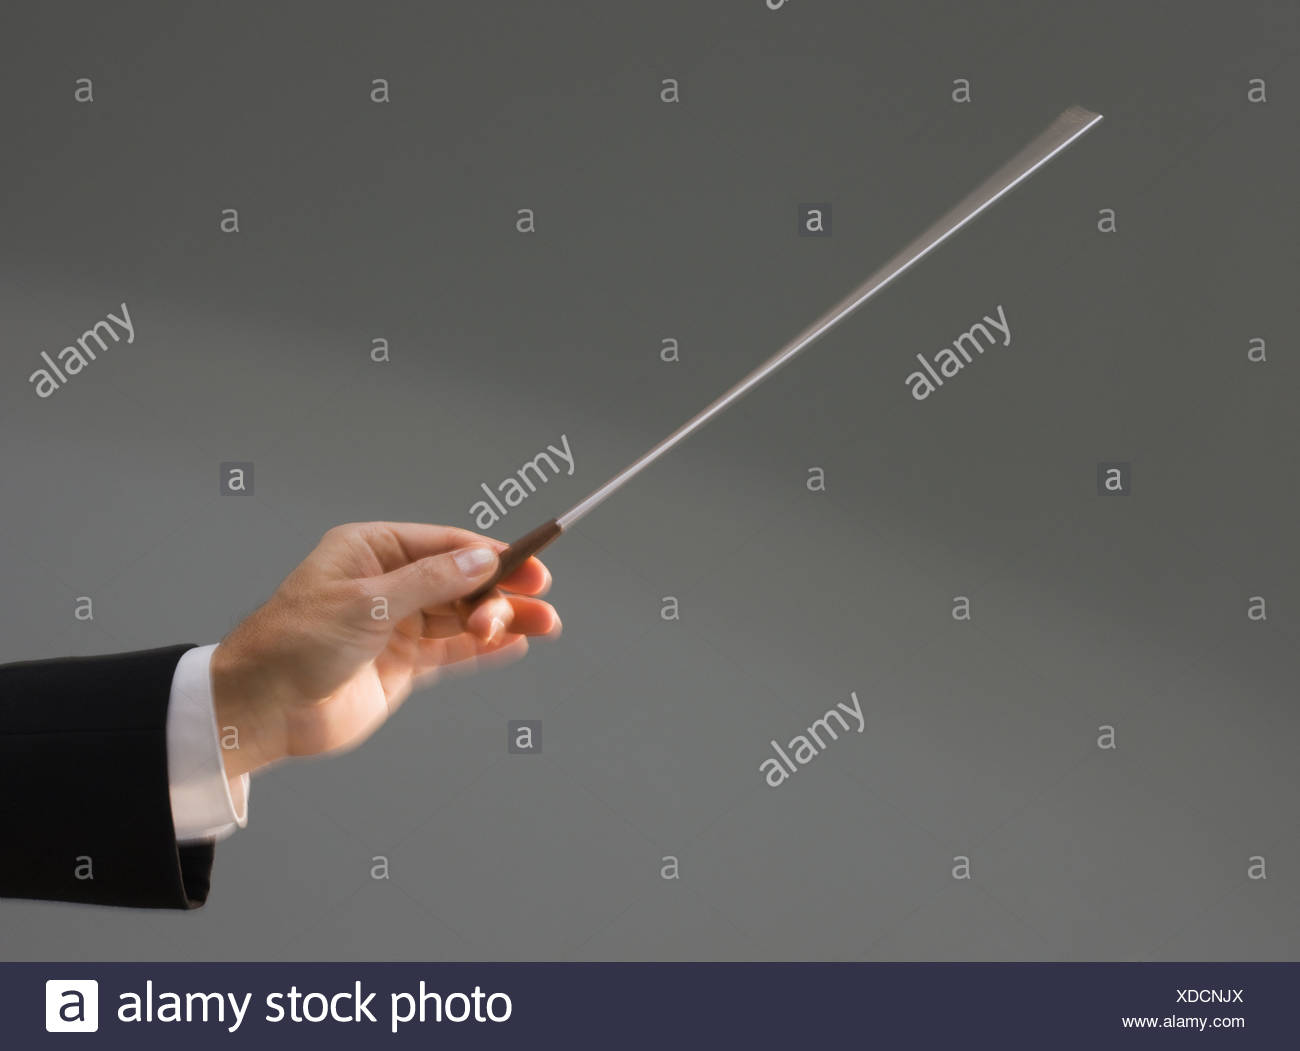 Male conductor's hand holding baton - Stock Image